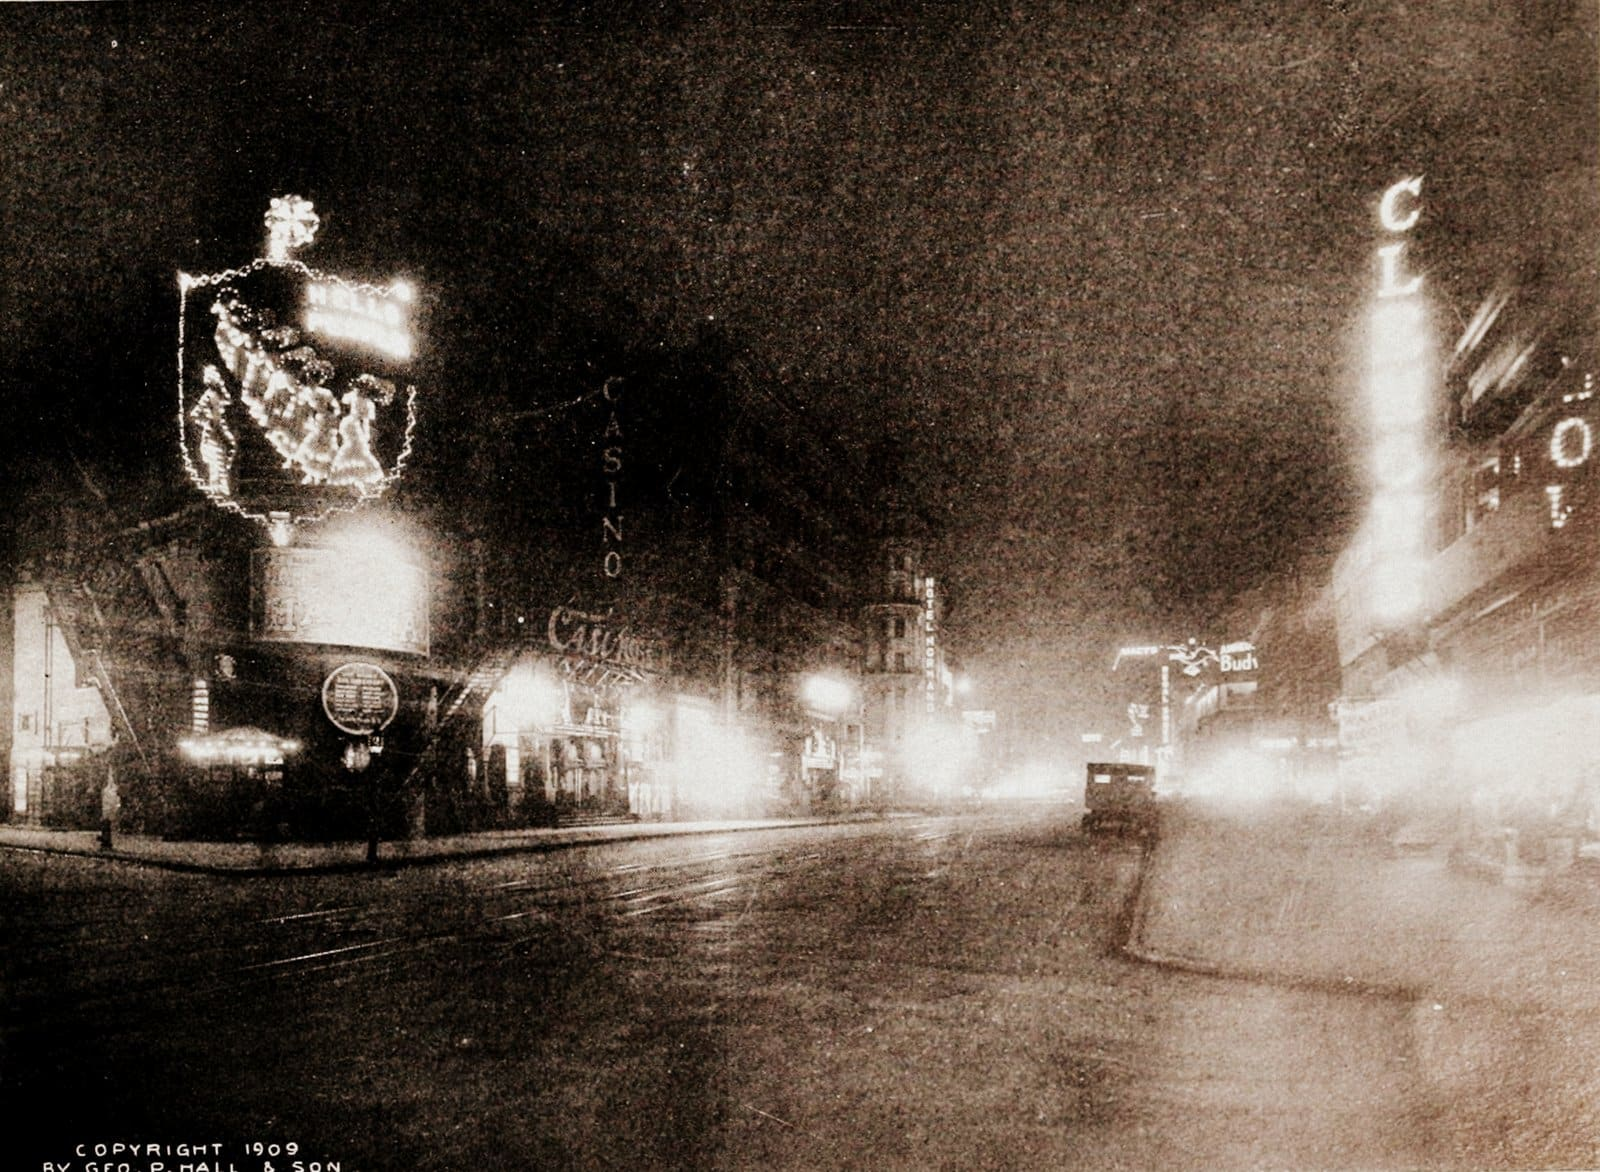 Broadway's midnight sun - Photos of old NYC from 1909 (1)